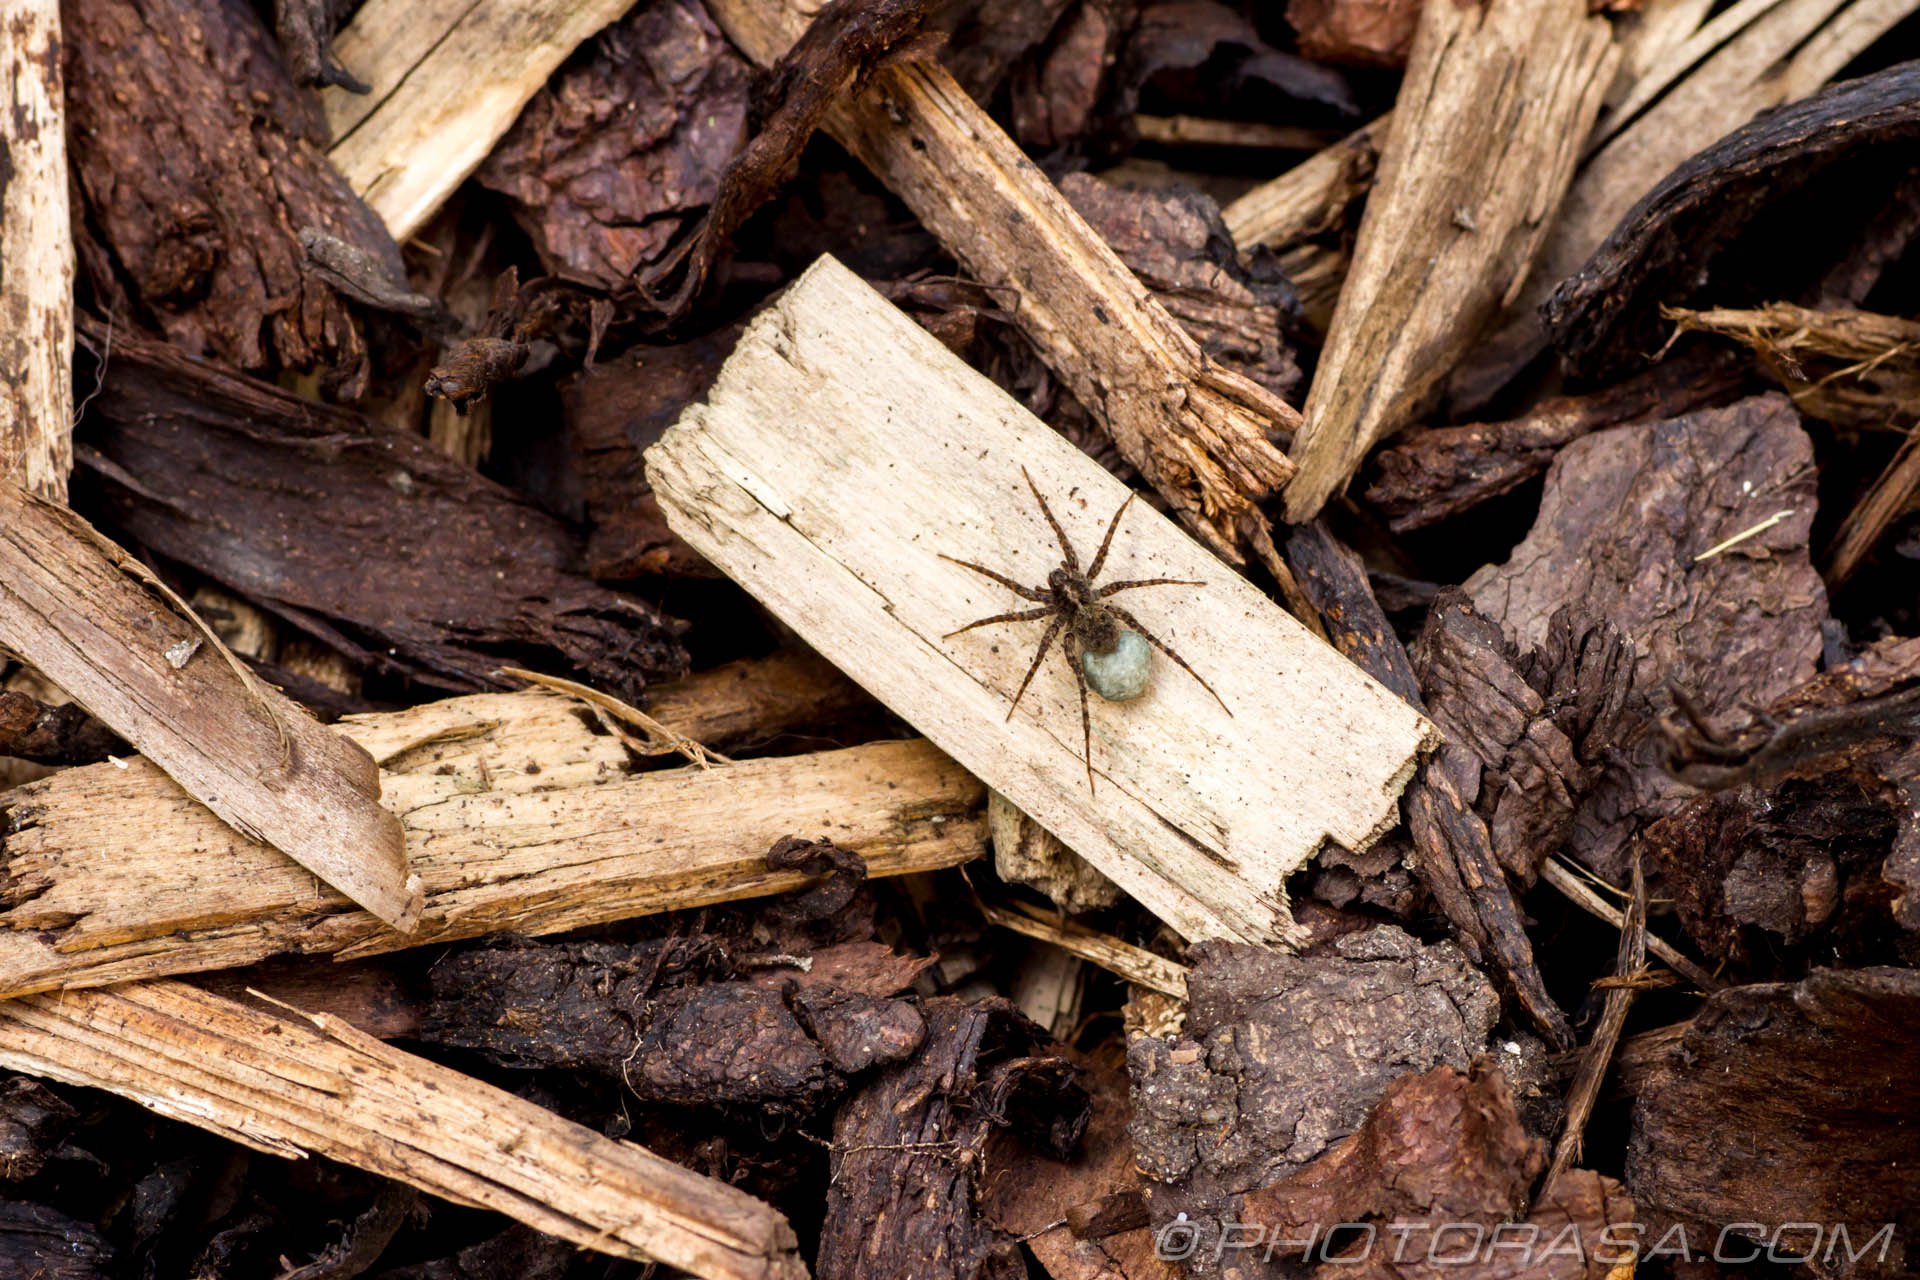 http://photorasa.com/wolf-spiders/spider-on-wood-and-bark/